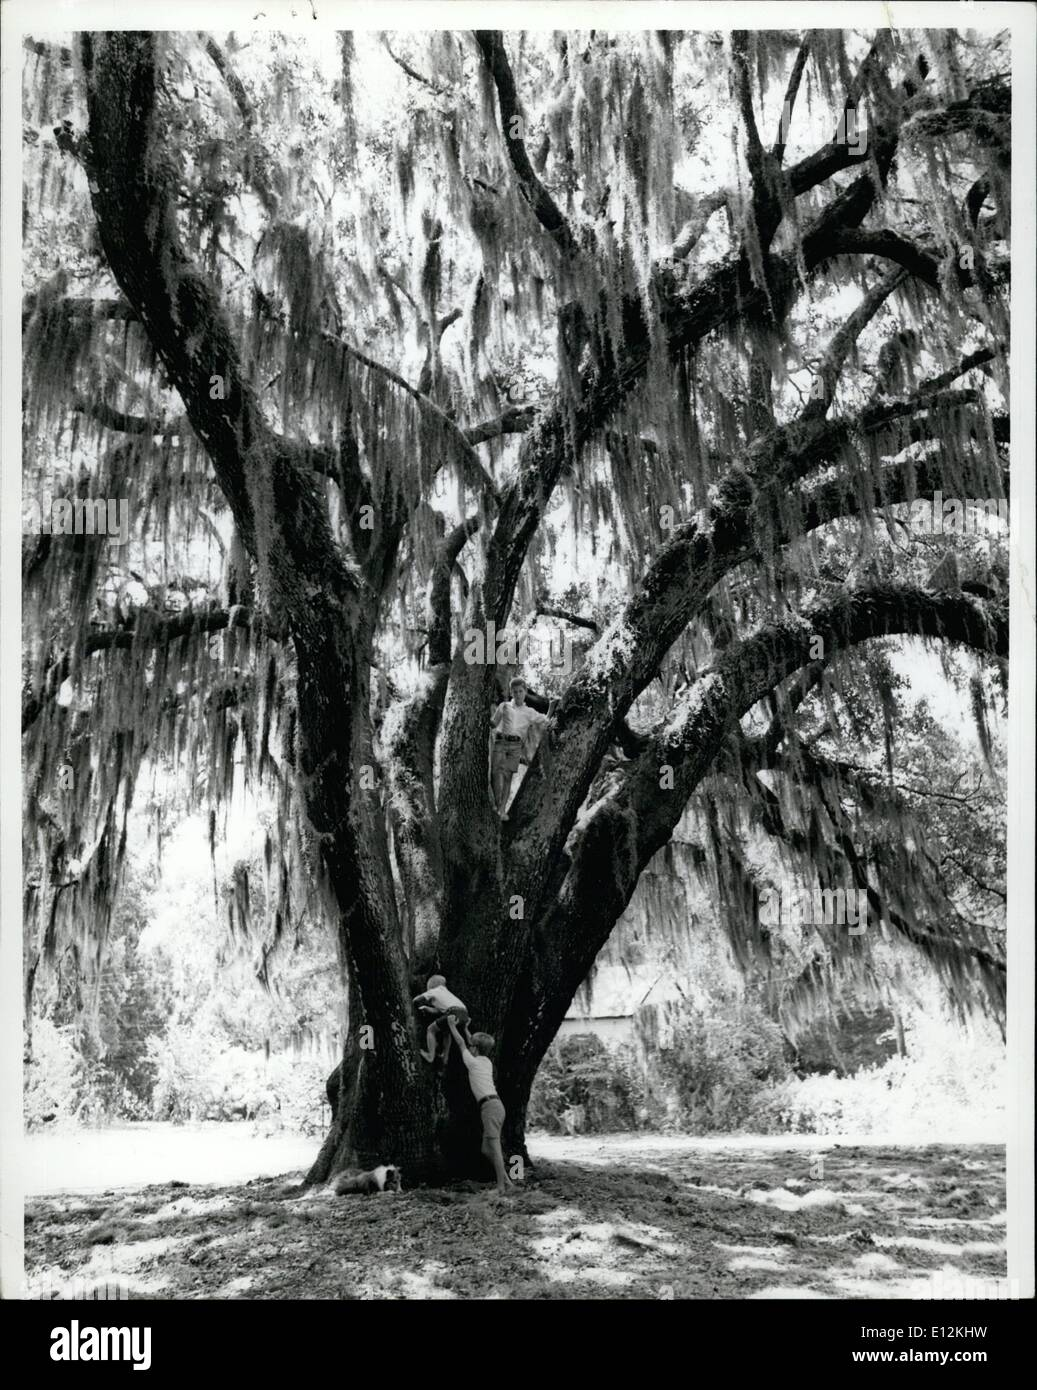 Feb. 24, 2012 - A TREE LOVES YOU Ecology-consciousness has spread to every aspect of life. Strickers saying .A Tree Loves You,. - Stock Image